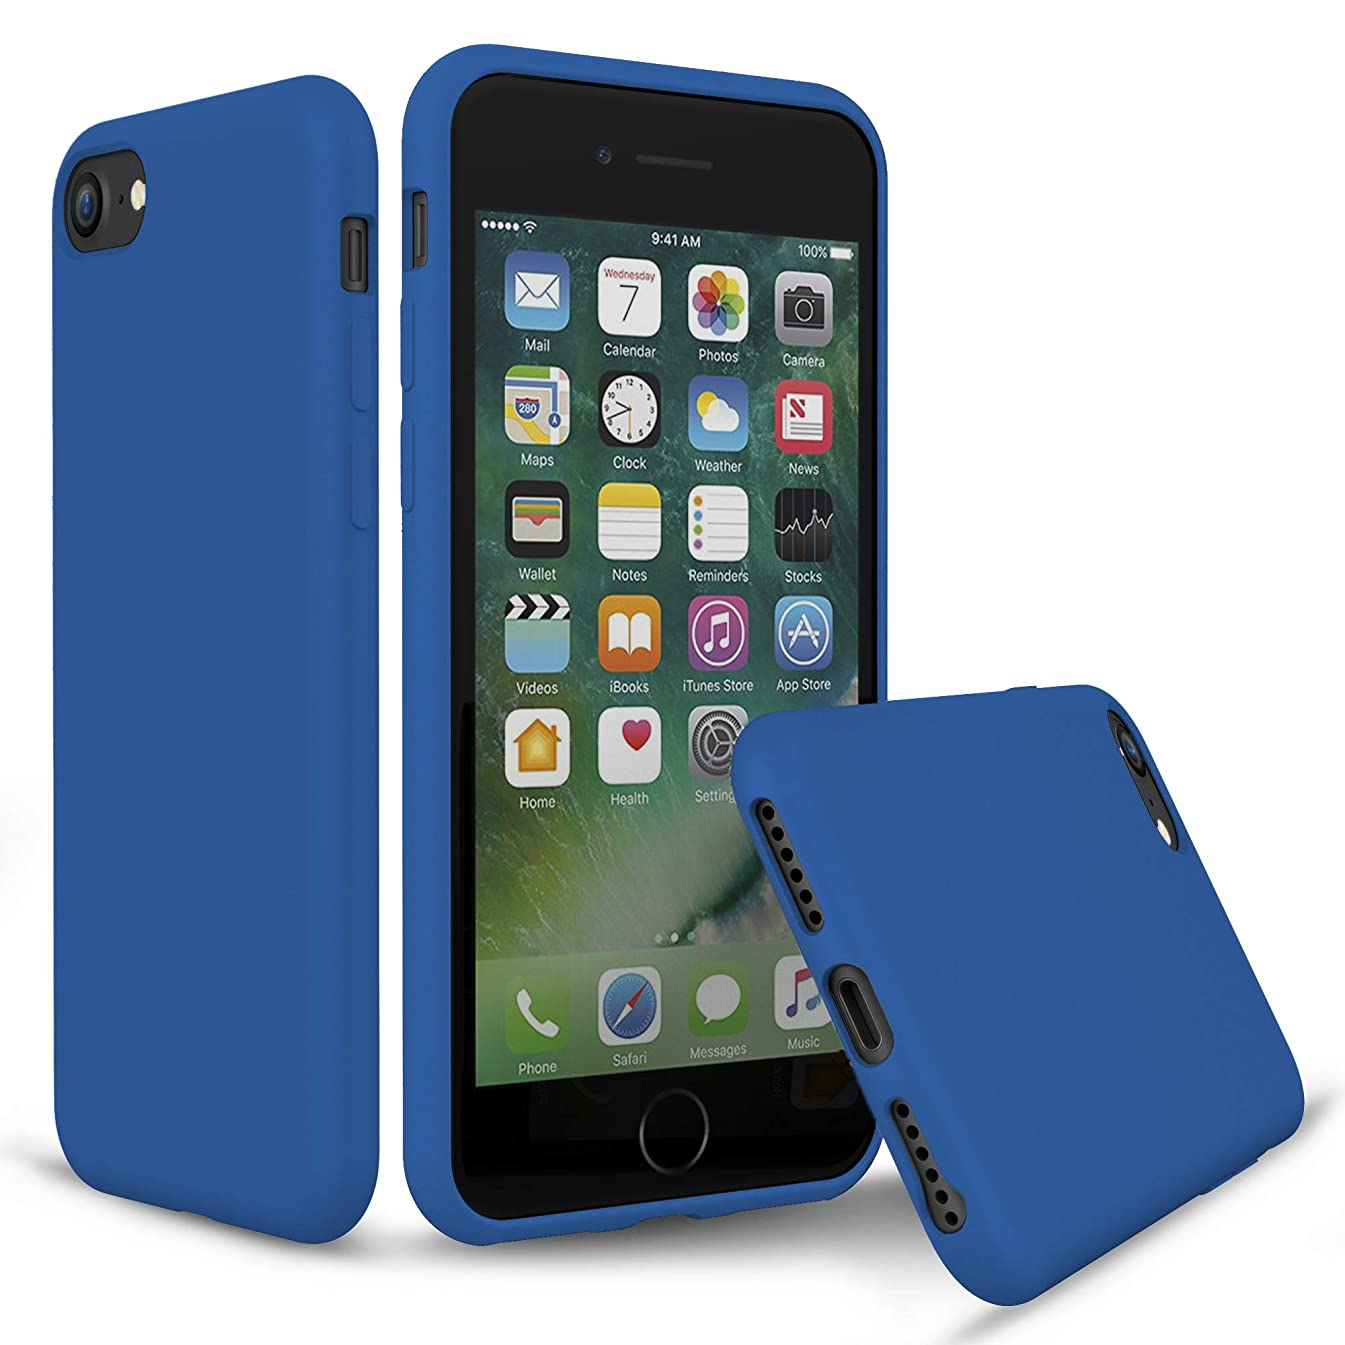 PENJOY Silicone Case for Apple iPhone 6 / 6s / 7/8, Full Body Protection Silicon Cases Support Wireless Charging Slim Rubber Cover, Cobalt Blue